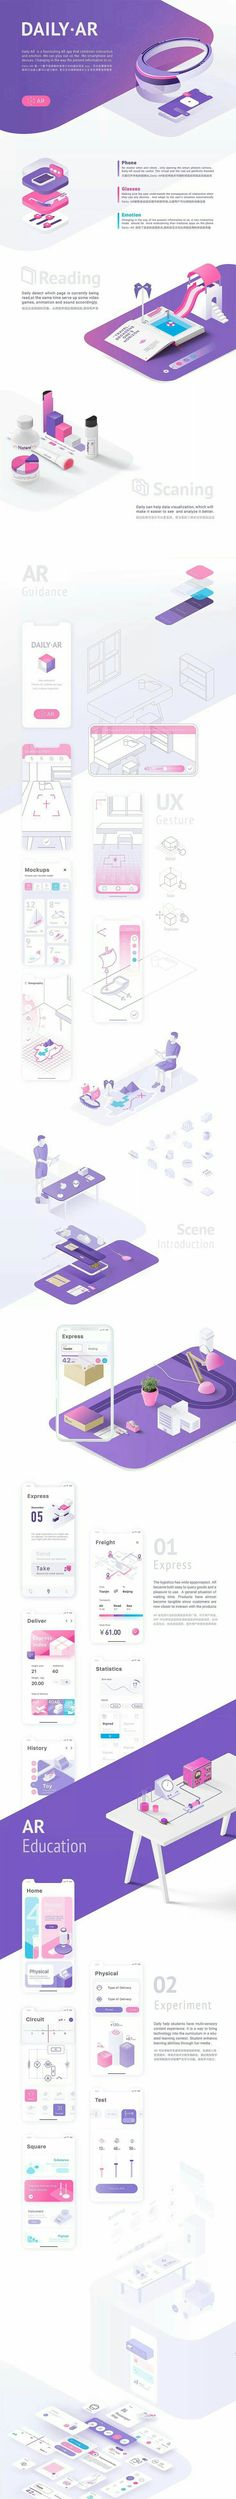 This is our daily Web app design inspiration article for our loyal readers. Every day we are showcasing a web app design whether live on app stores or only designed as concept. Cool Web Design, Best App Design, Web Design Trends, Web Layout, Layout Design, Page Design, Font Design, Website Layout, Android App Design